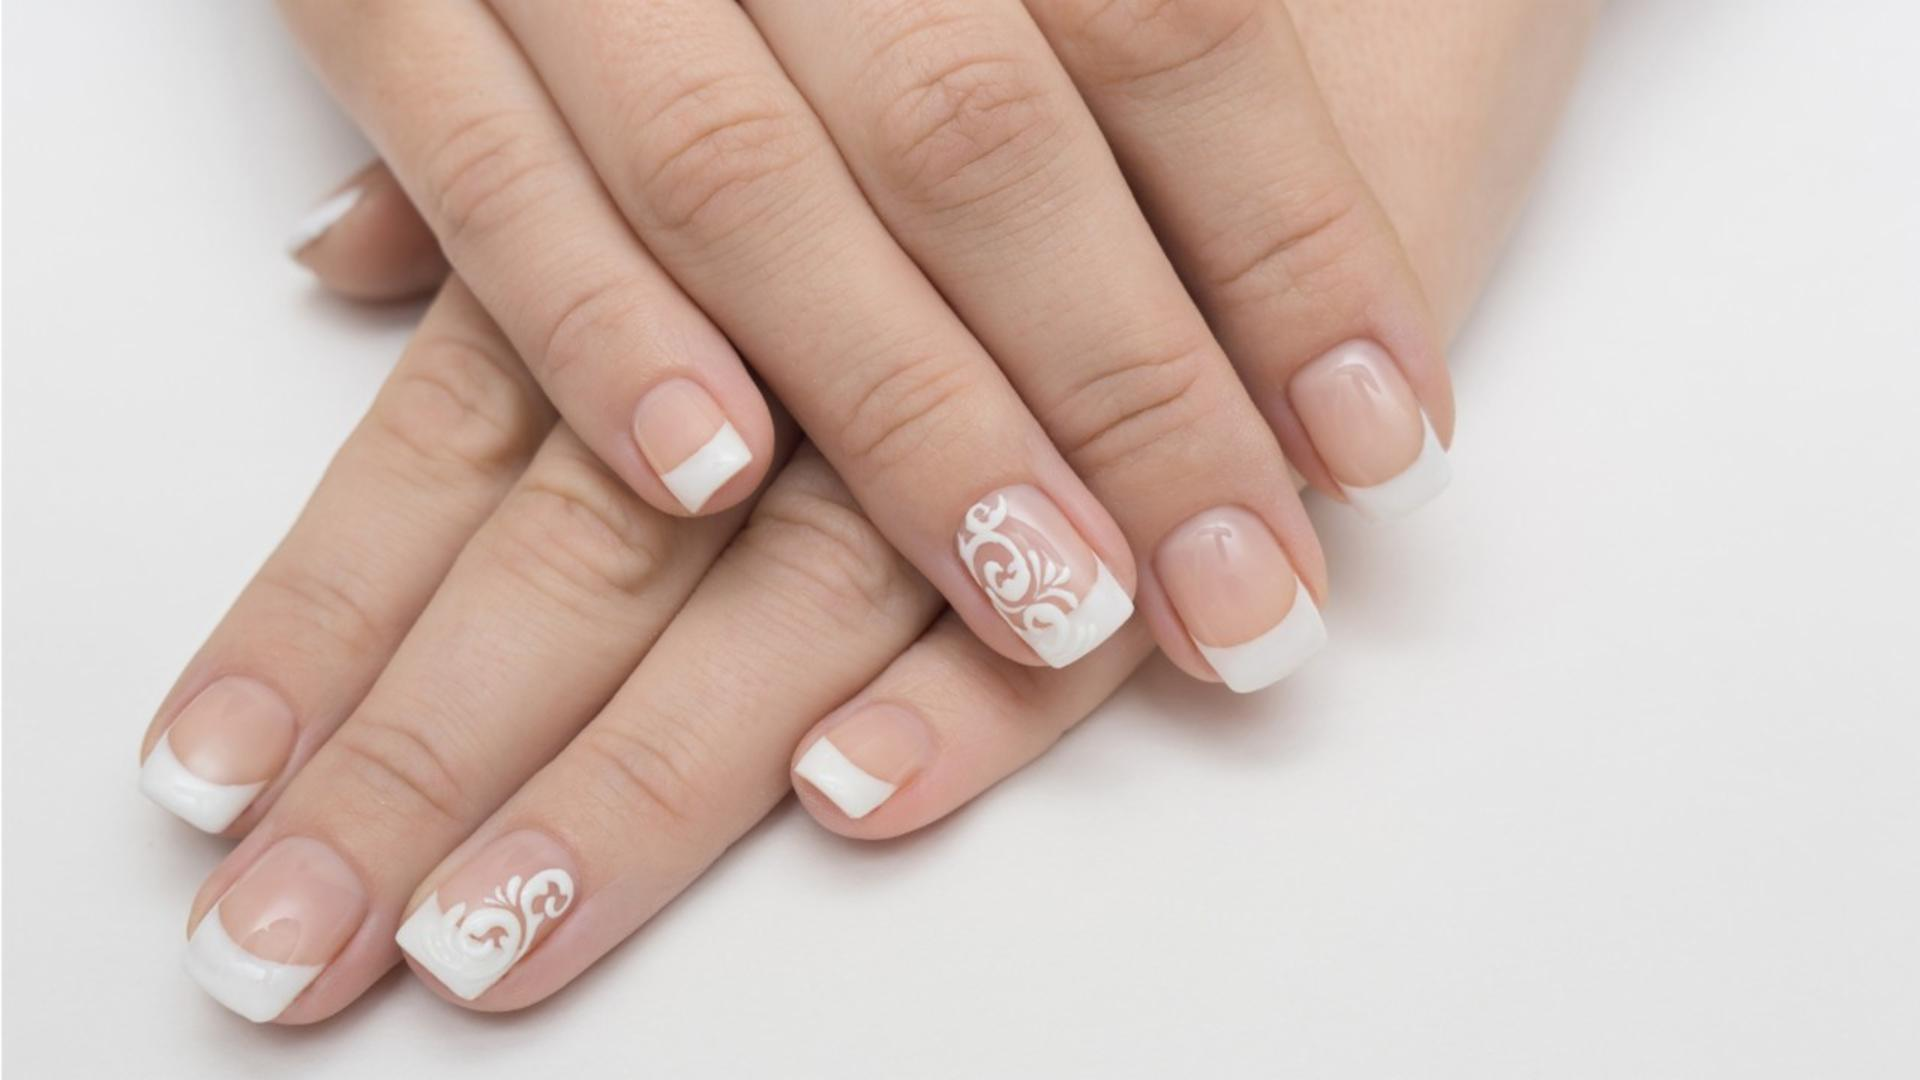 Zoya's Naked Manicure kit is like a 'BB cream for your nails'